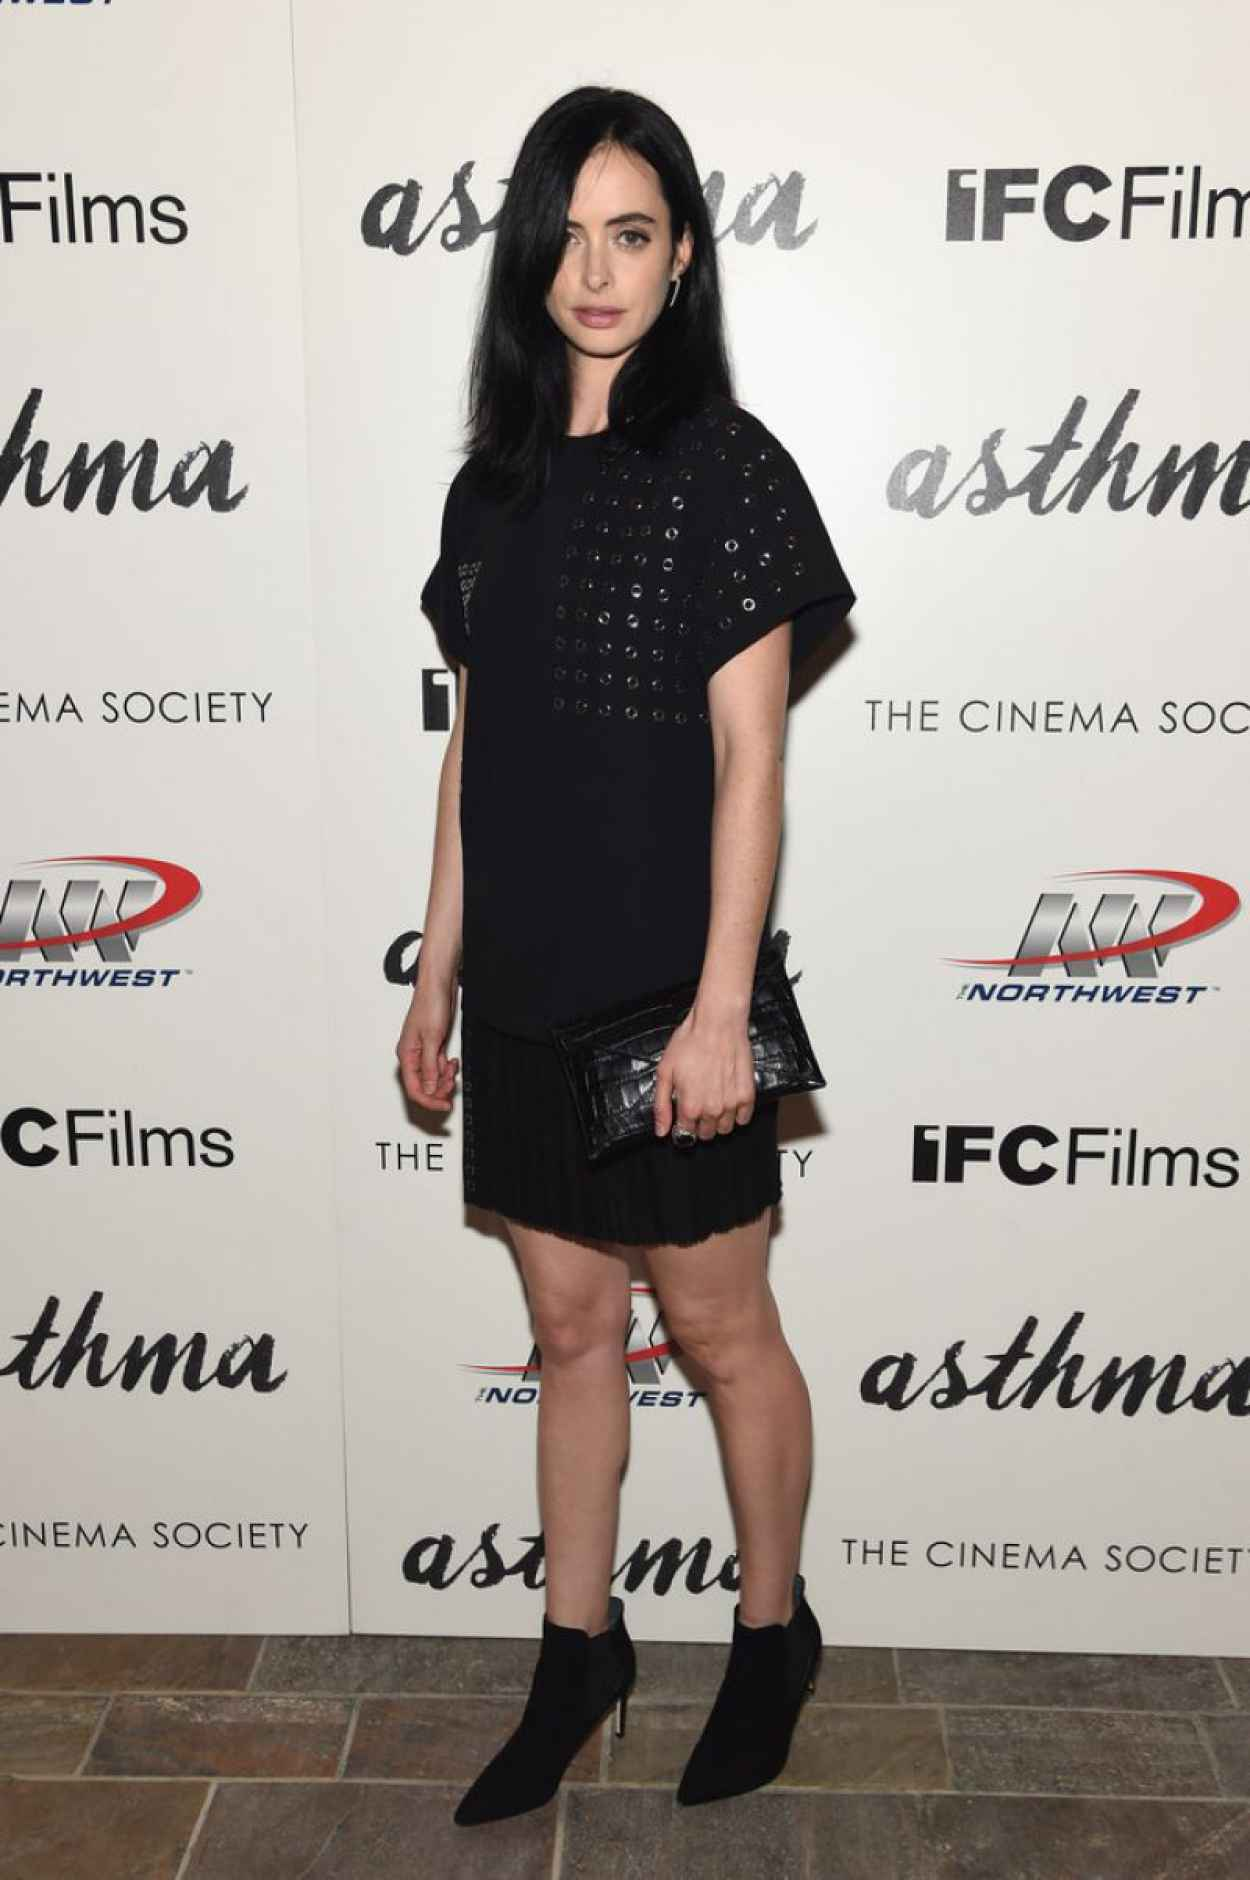 Krysten Ritter - Asthma Screening in NYC-5